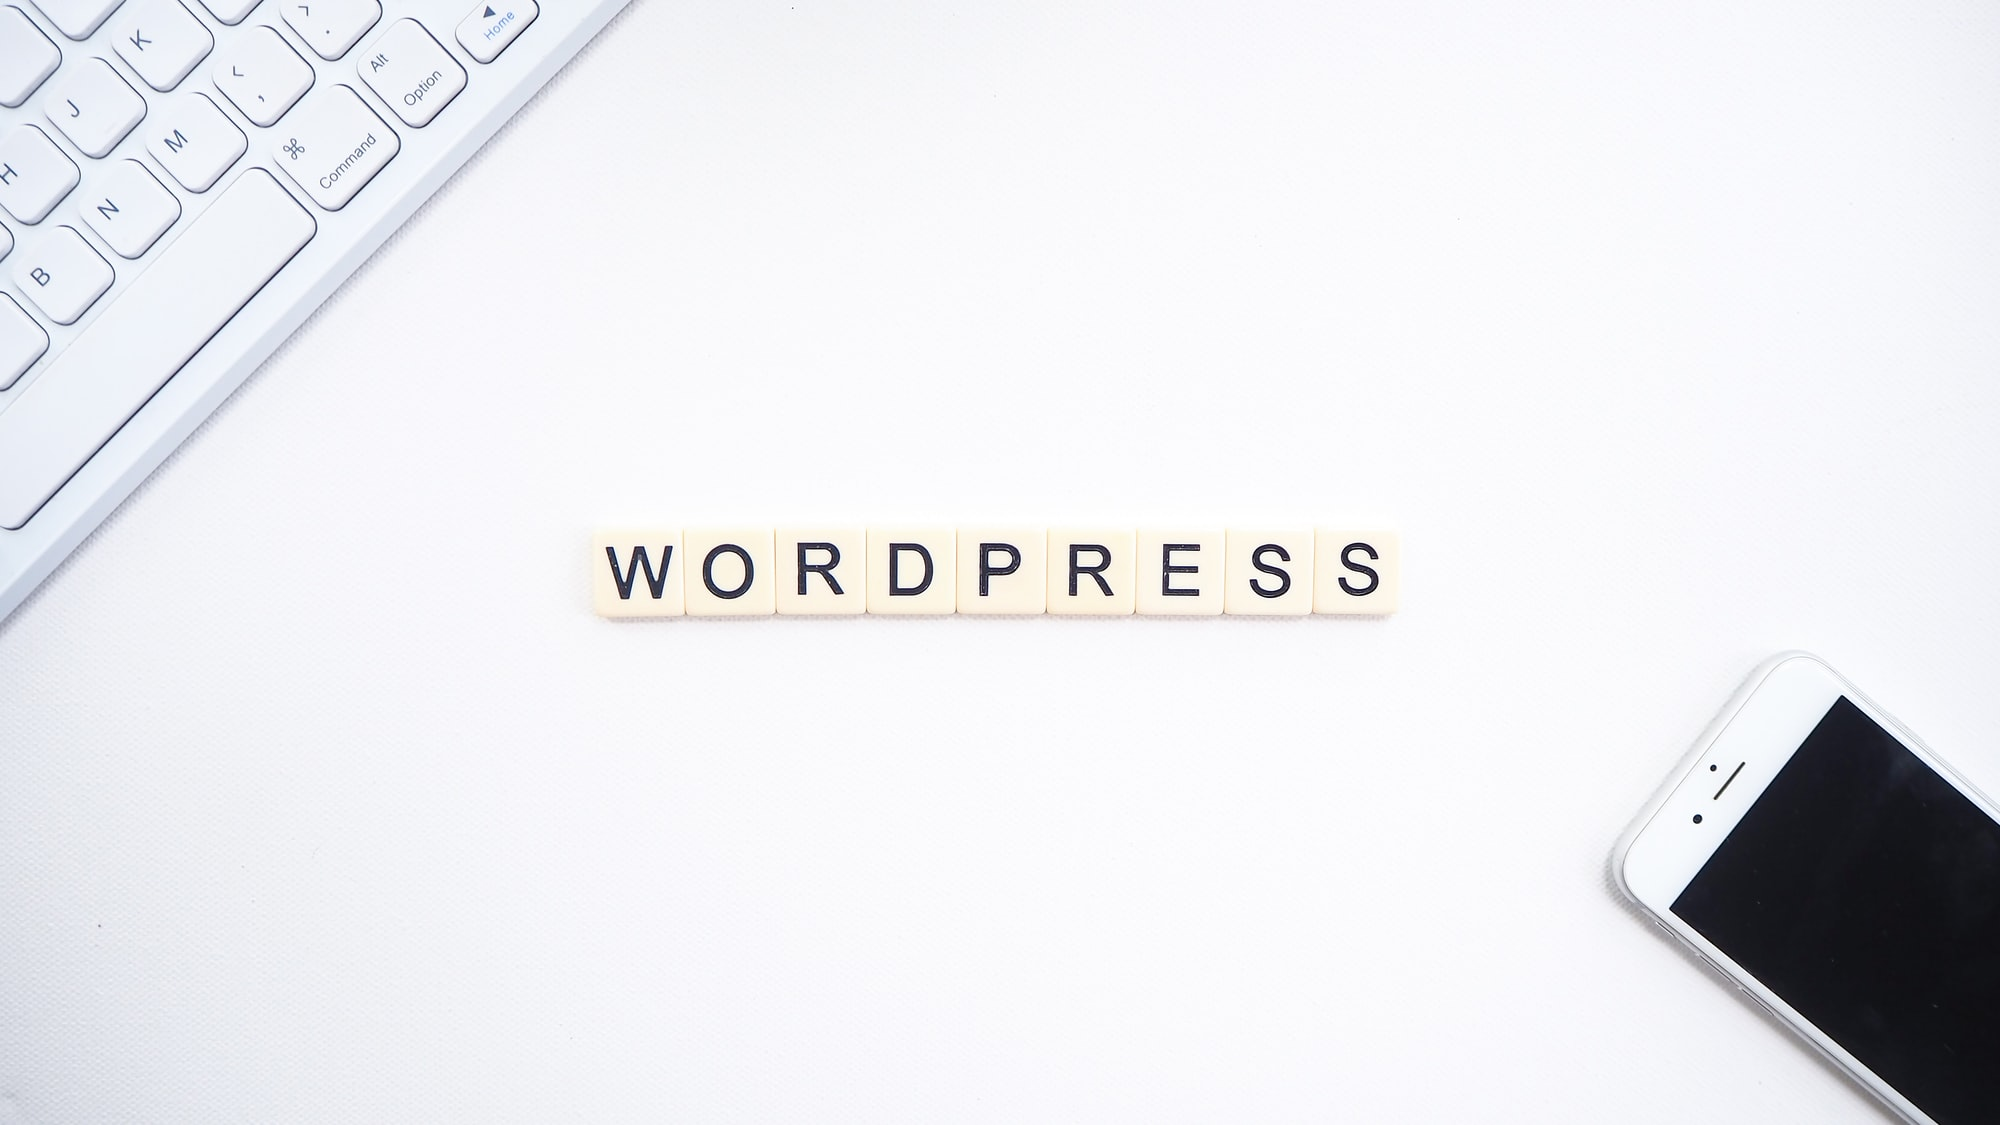 Moving my site to Wordpress